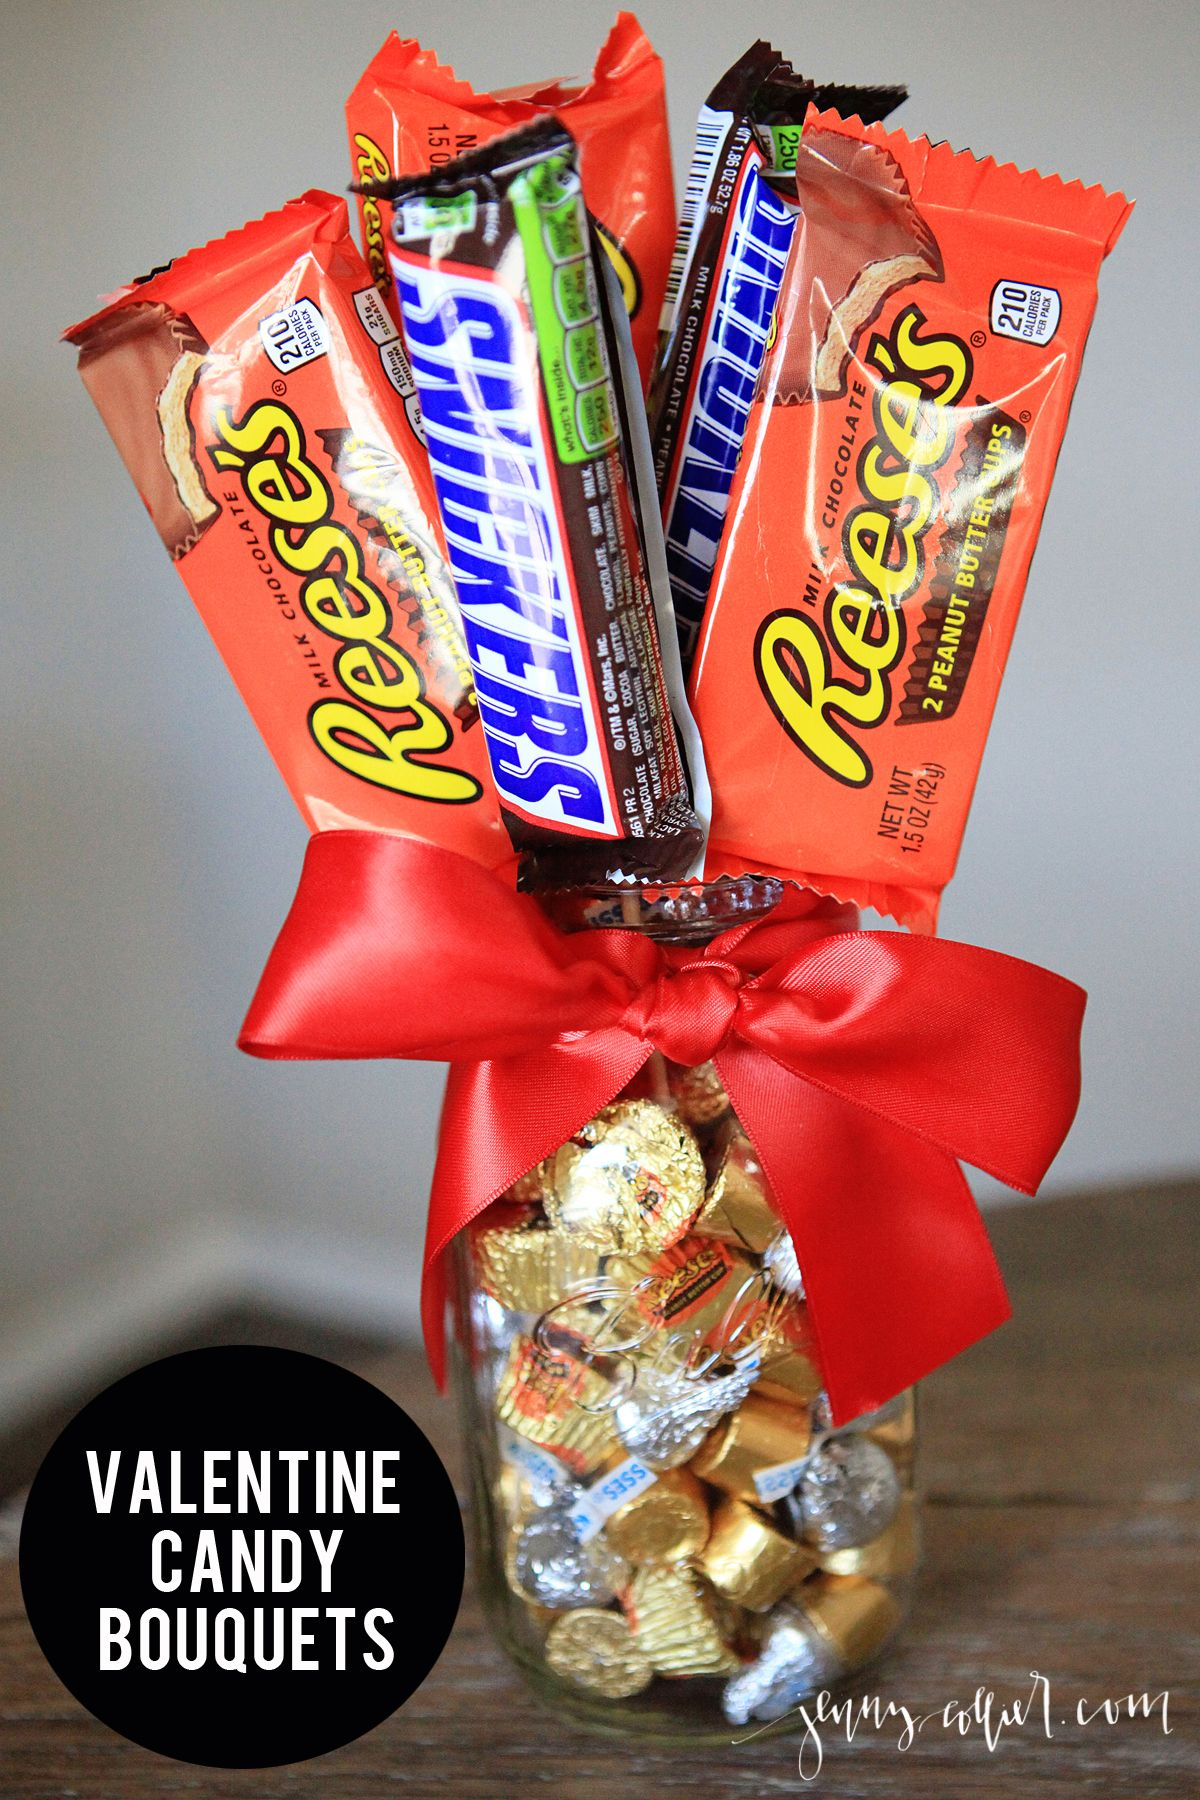 These Diy Valentine Candy Bouquets Are The Perfect Gift For A Loving Man Or